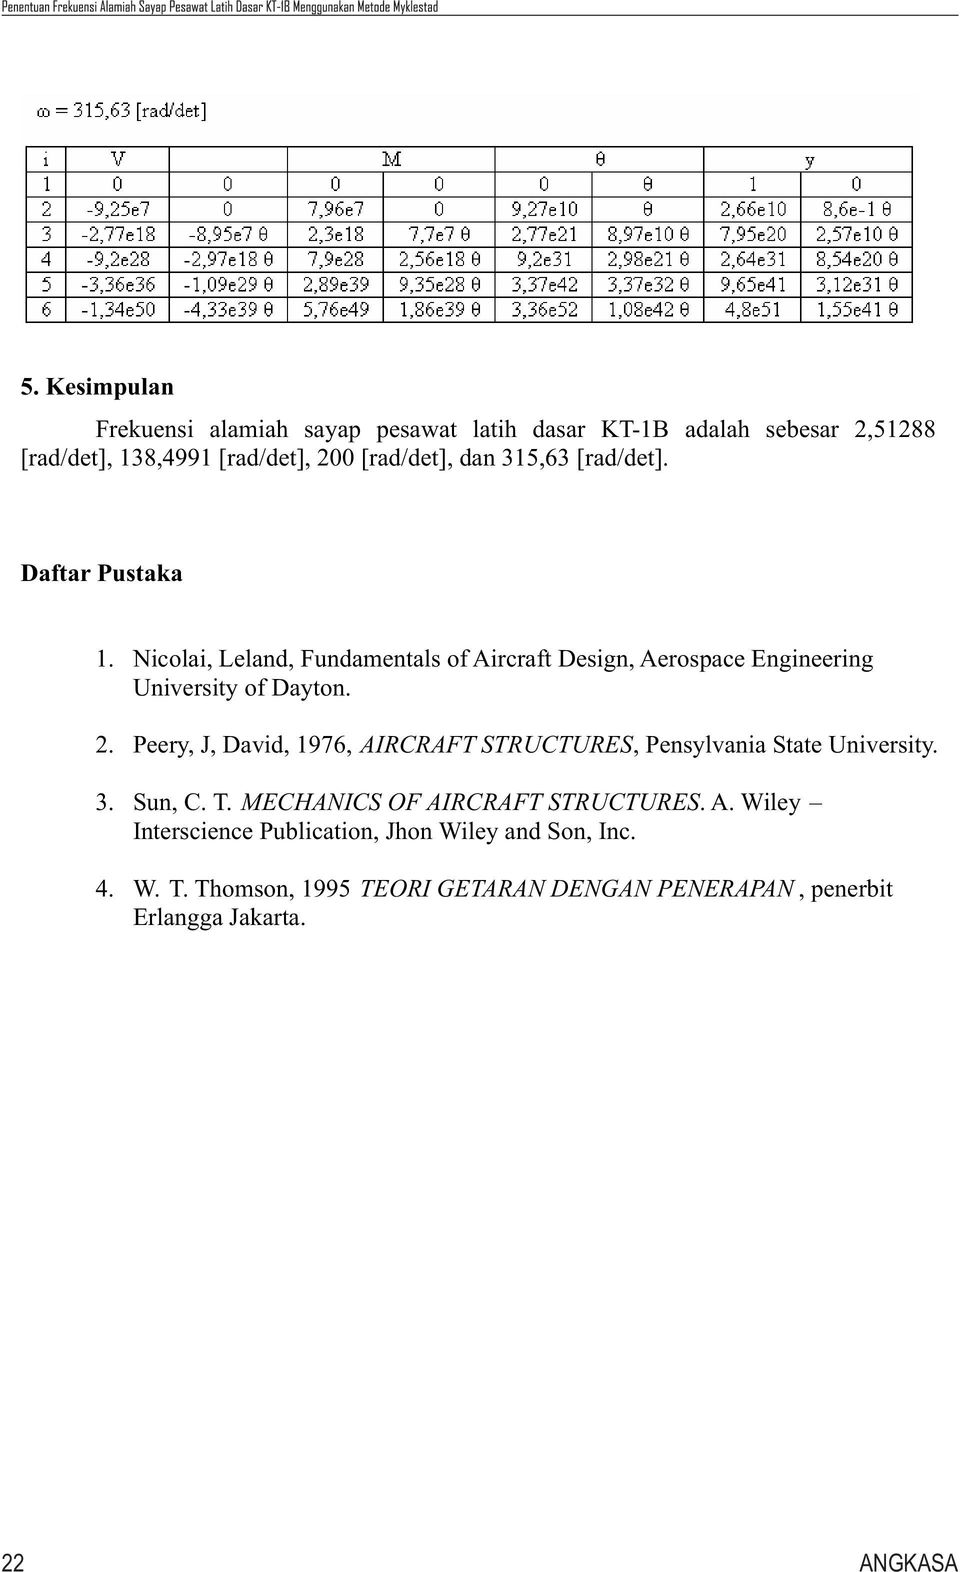 Peery, J, David, 1976, AIRCRAFT STRUCTURES, Pensylvania State University. 3. Sun, C. T. MECHANICS OF AIRCRAFT STRUCTURES. A. Wiley Interscience Publication, Jhon Wiley and Son, Inc.